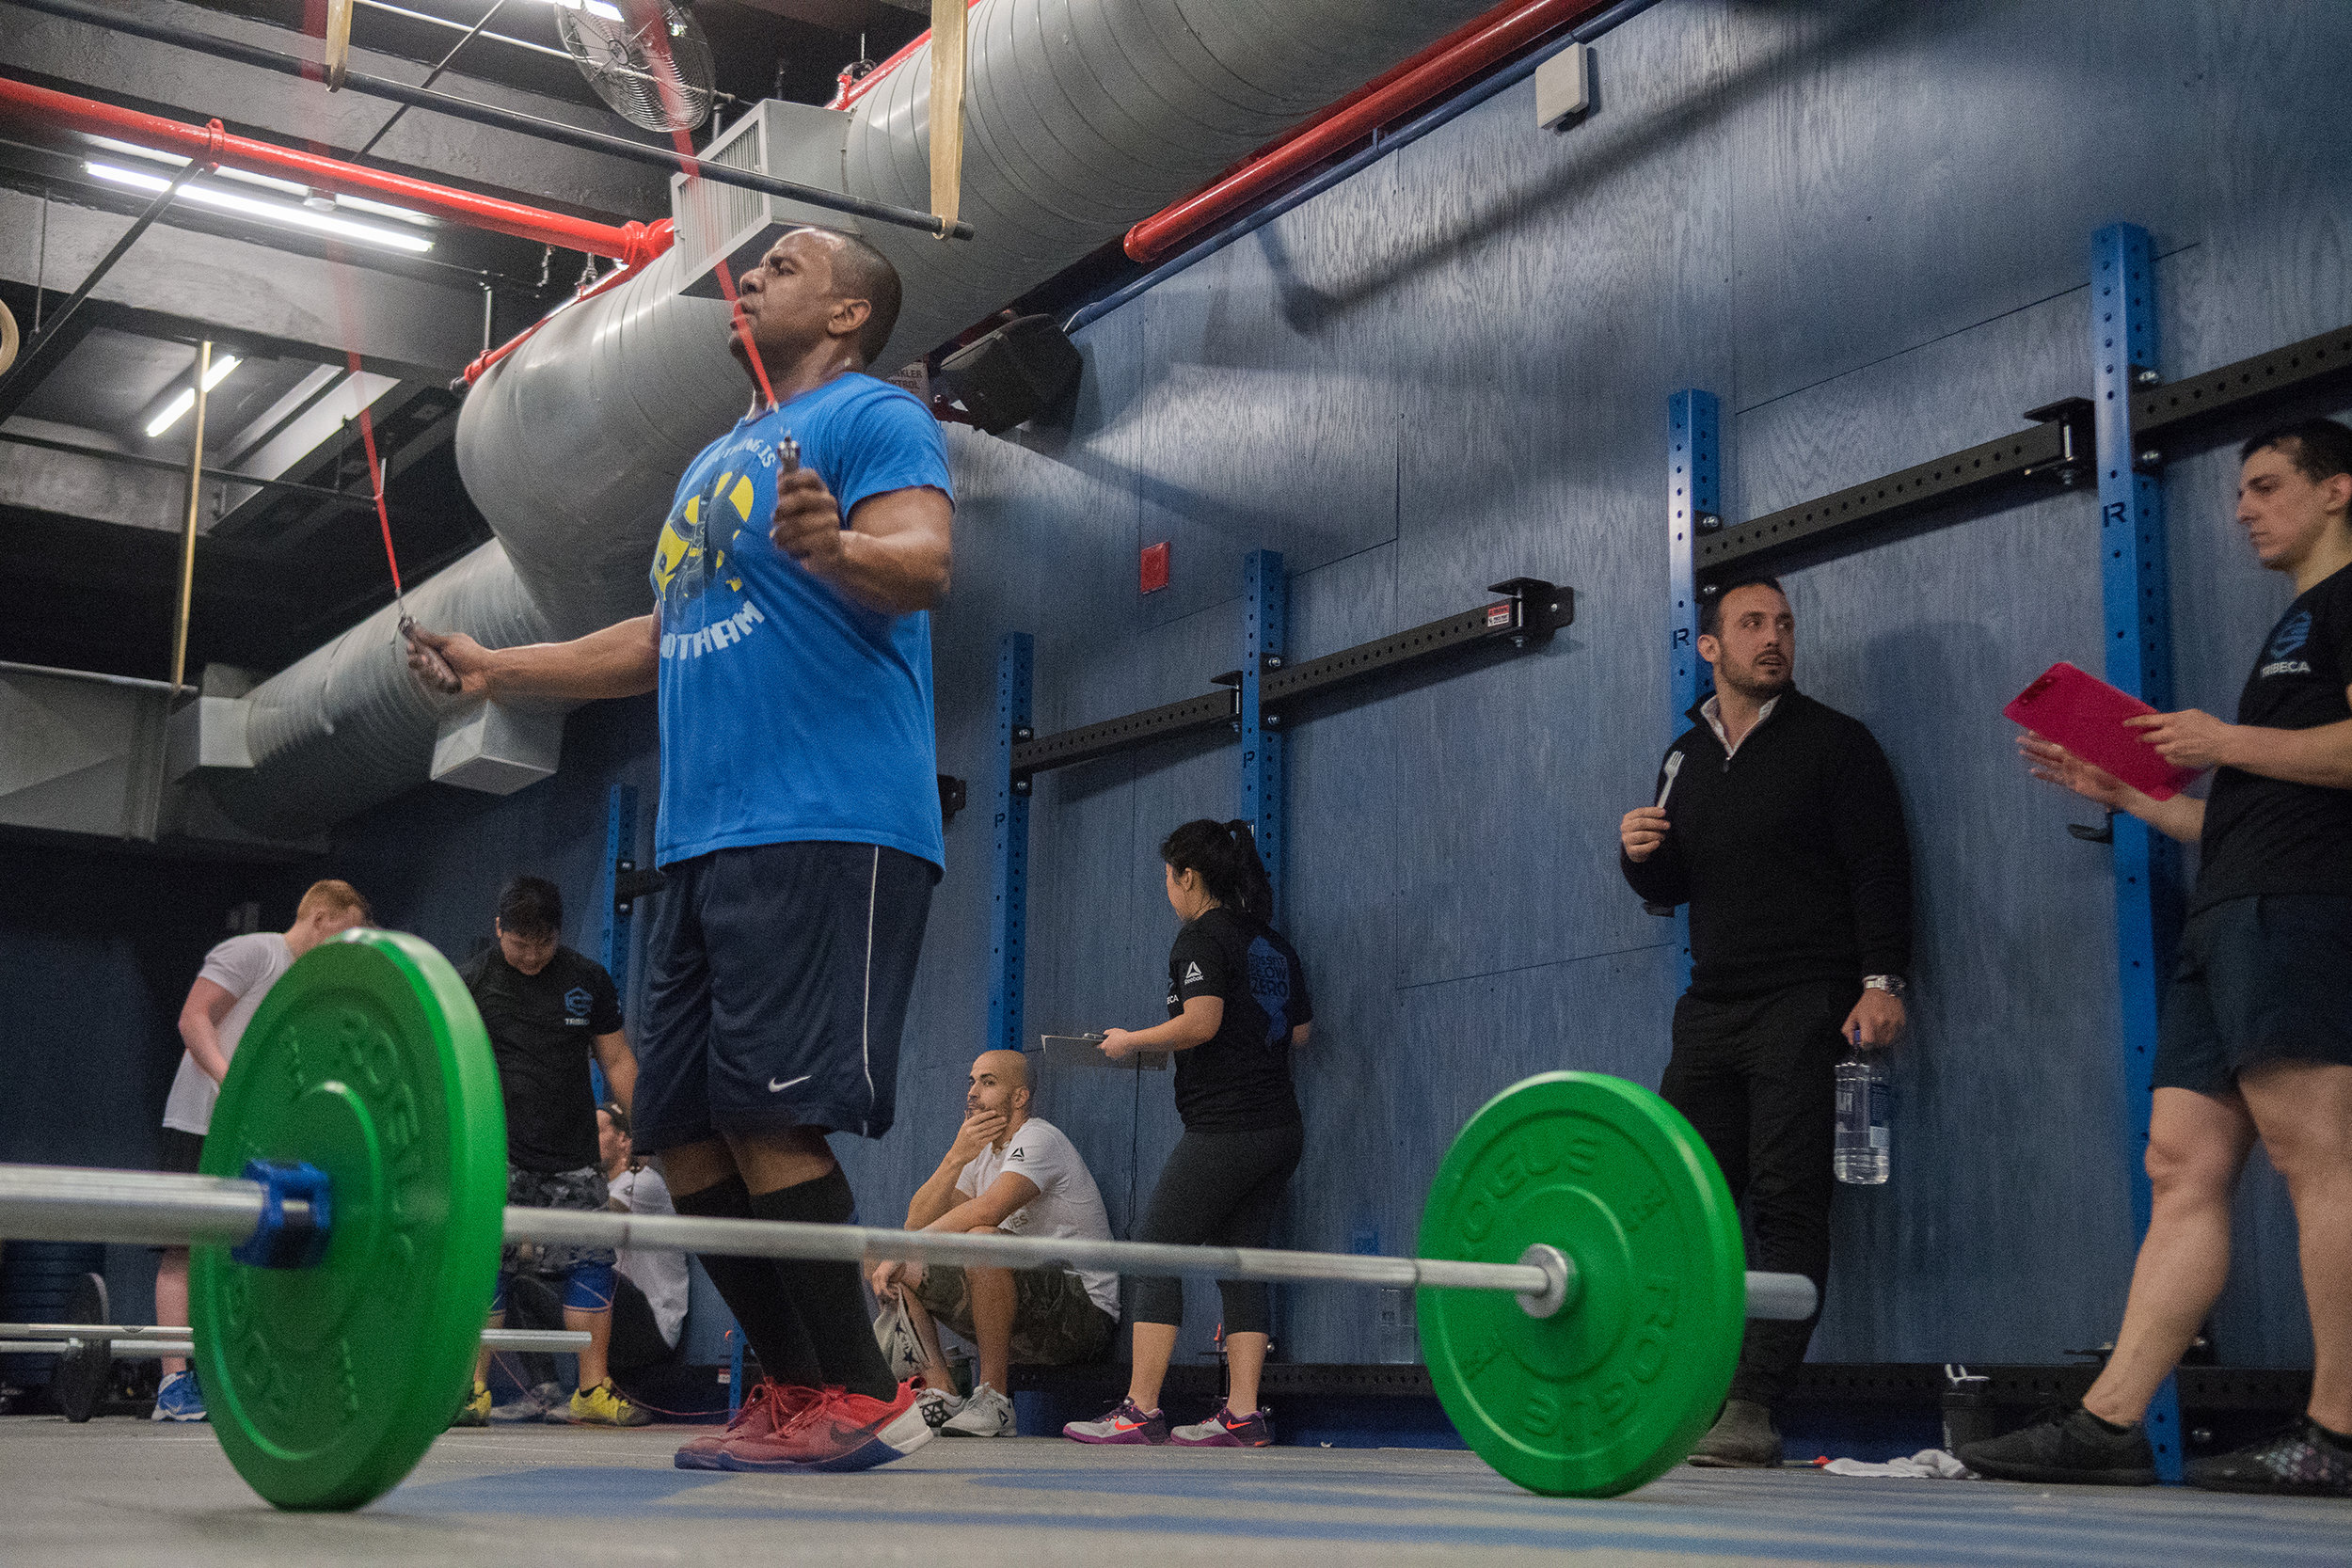 ICE NYC CrossFit Open 17.5 @martsromero - Quick Selects 013 20170324.jpg